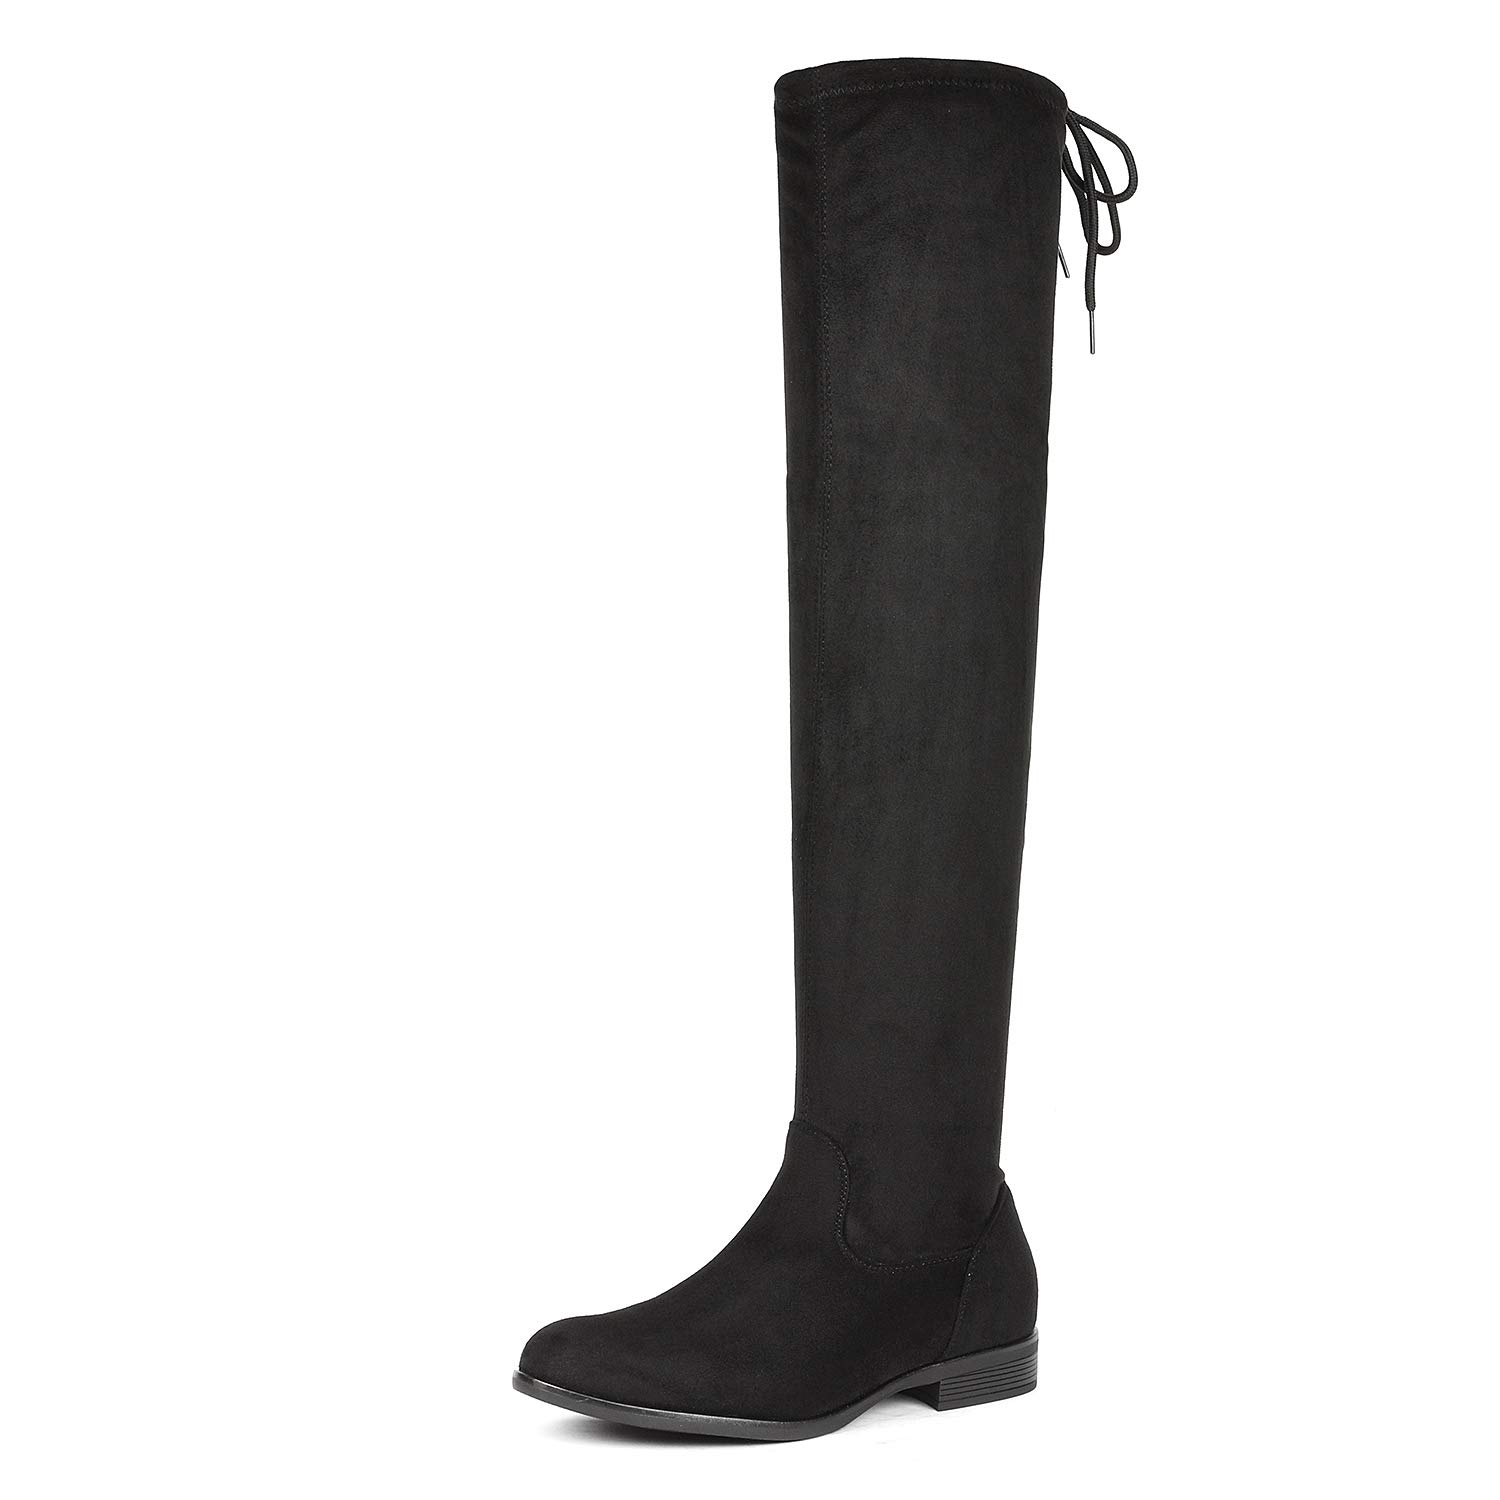 c9247b649a9 DREAM PAIRS Women s Suede Over The Knee Thigh High Winter Boots product  image